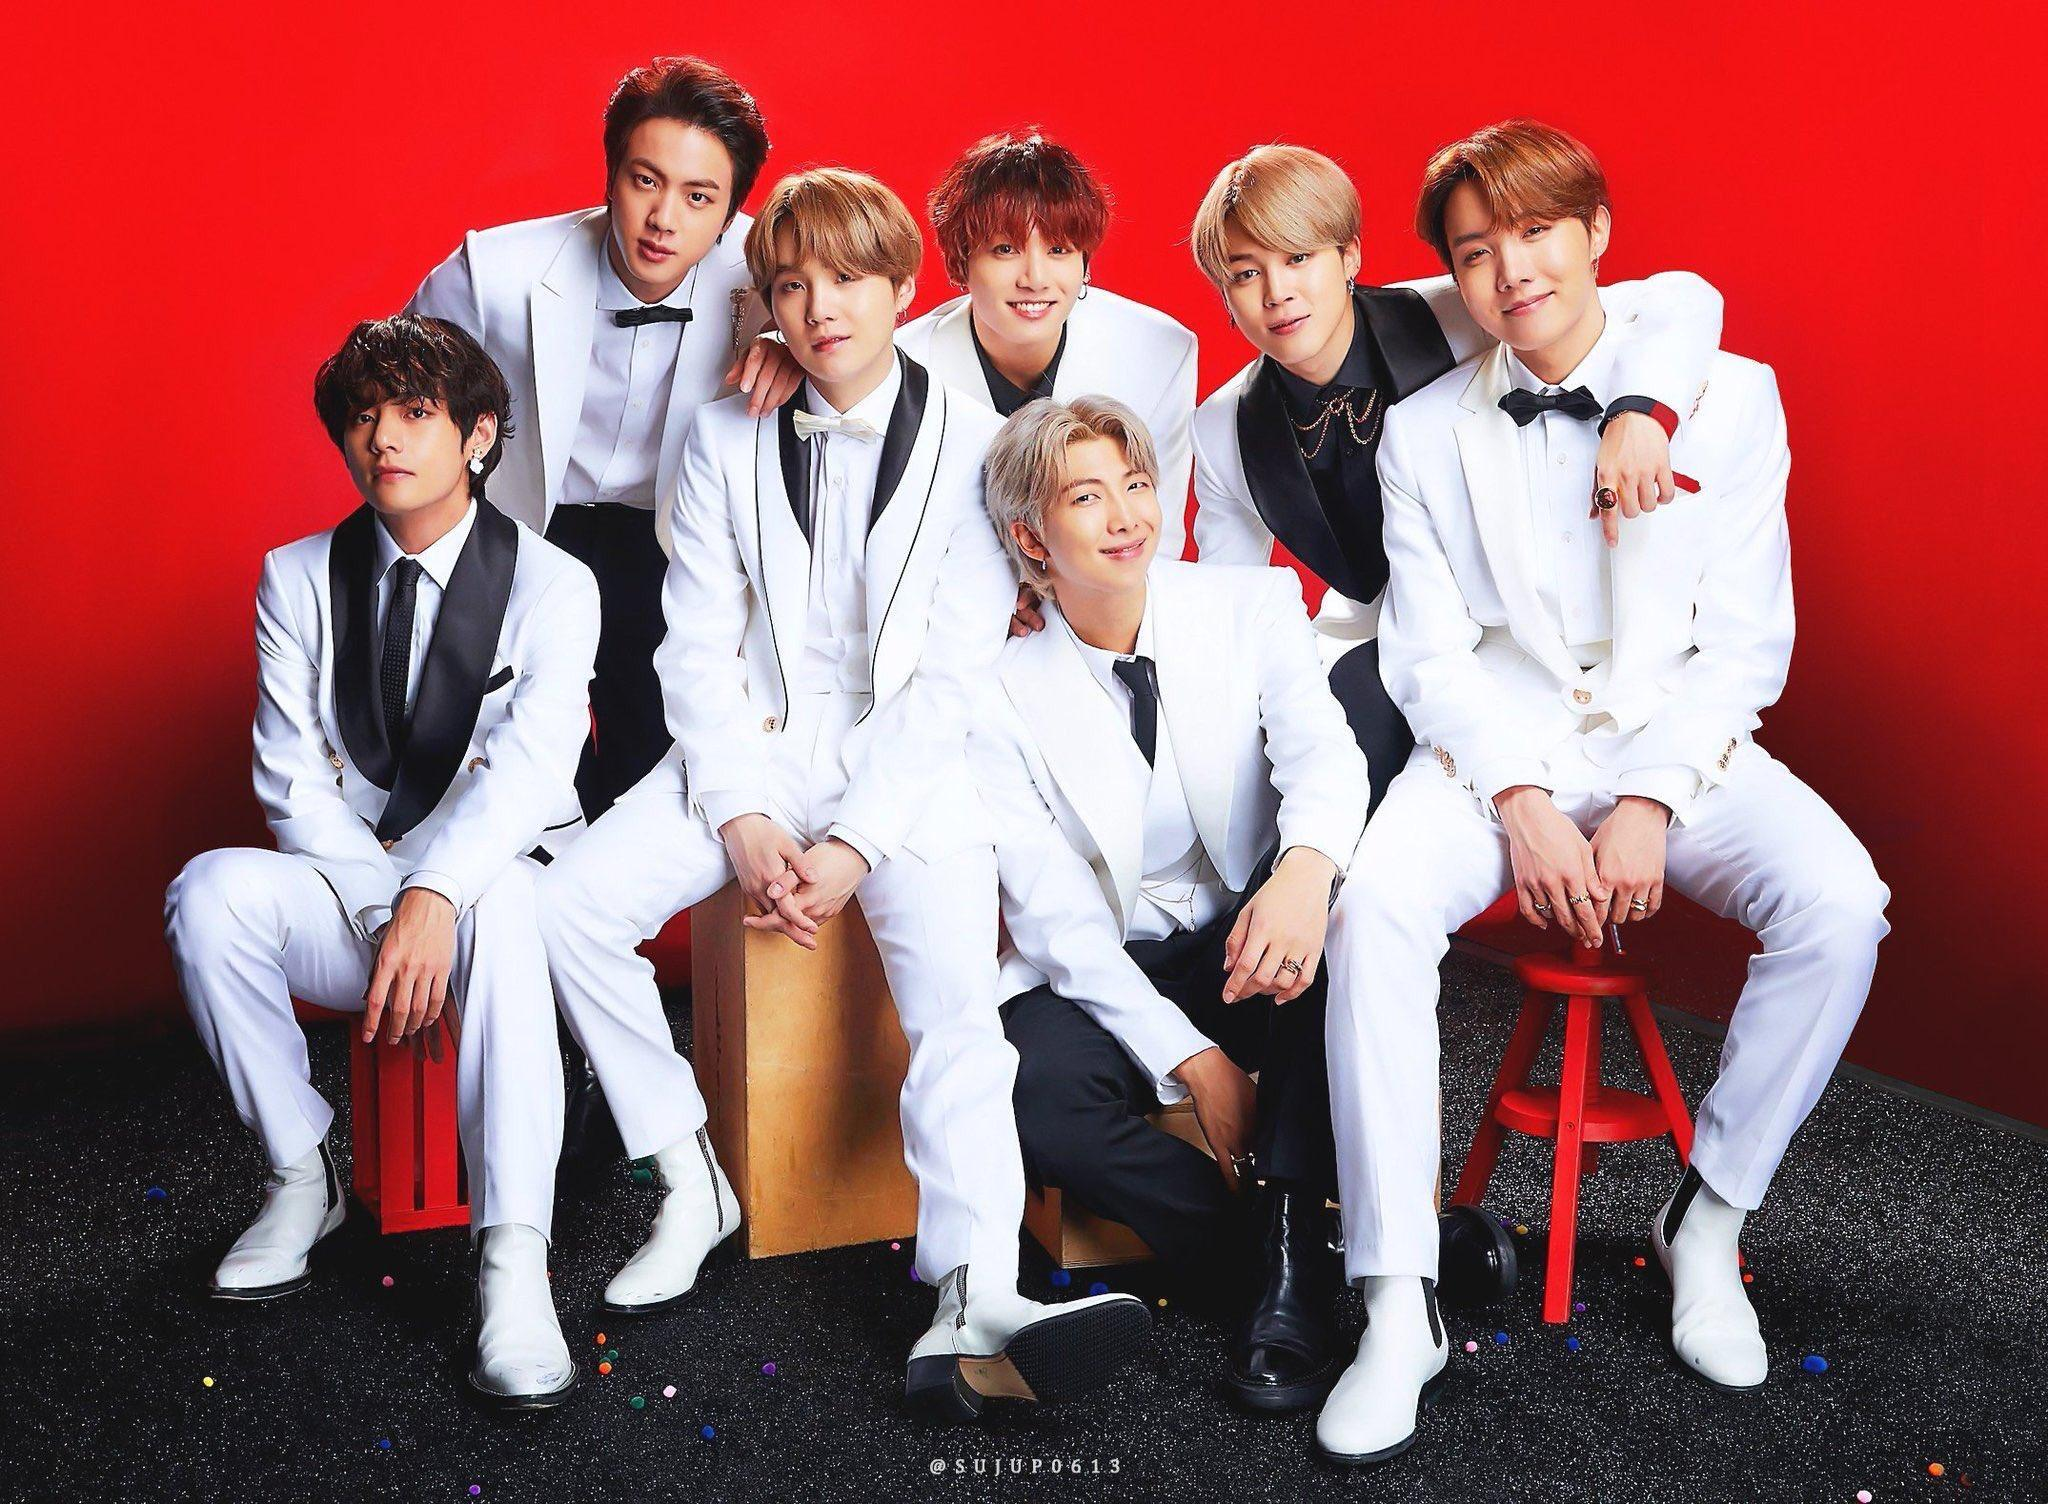 KPOP BTS Wallpaper HD 2020 for Android - APK Download